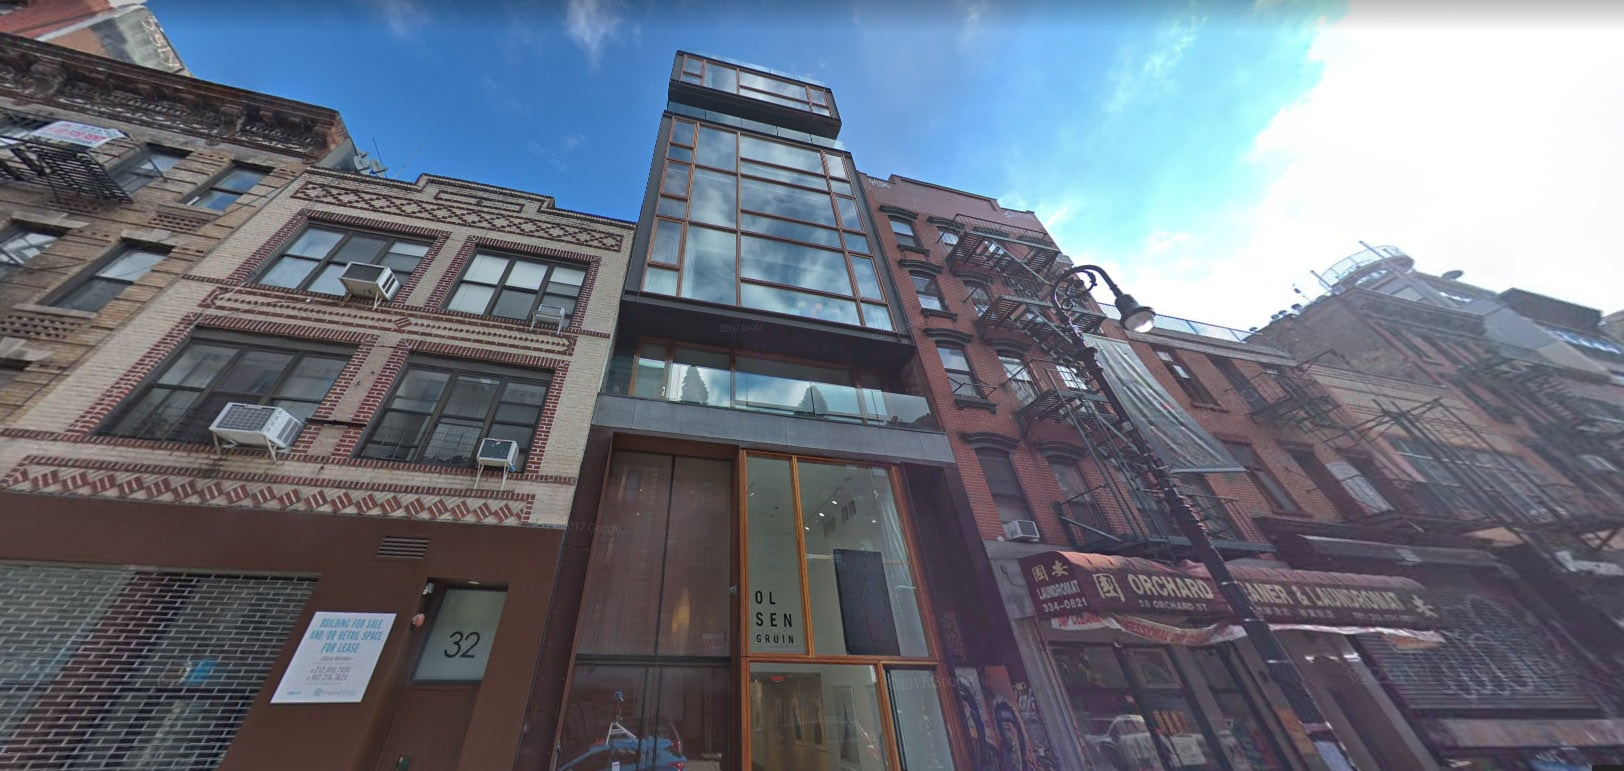 30 Orchard Street In Lower East Side Luxury Apartments